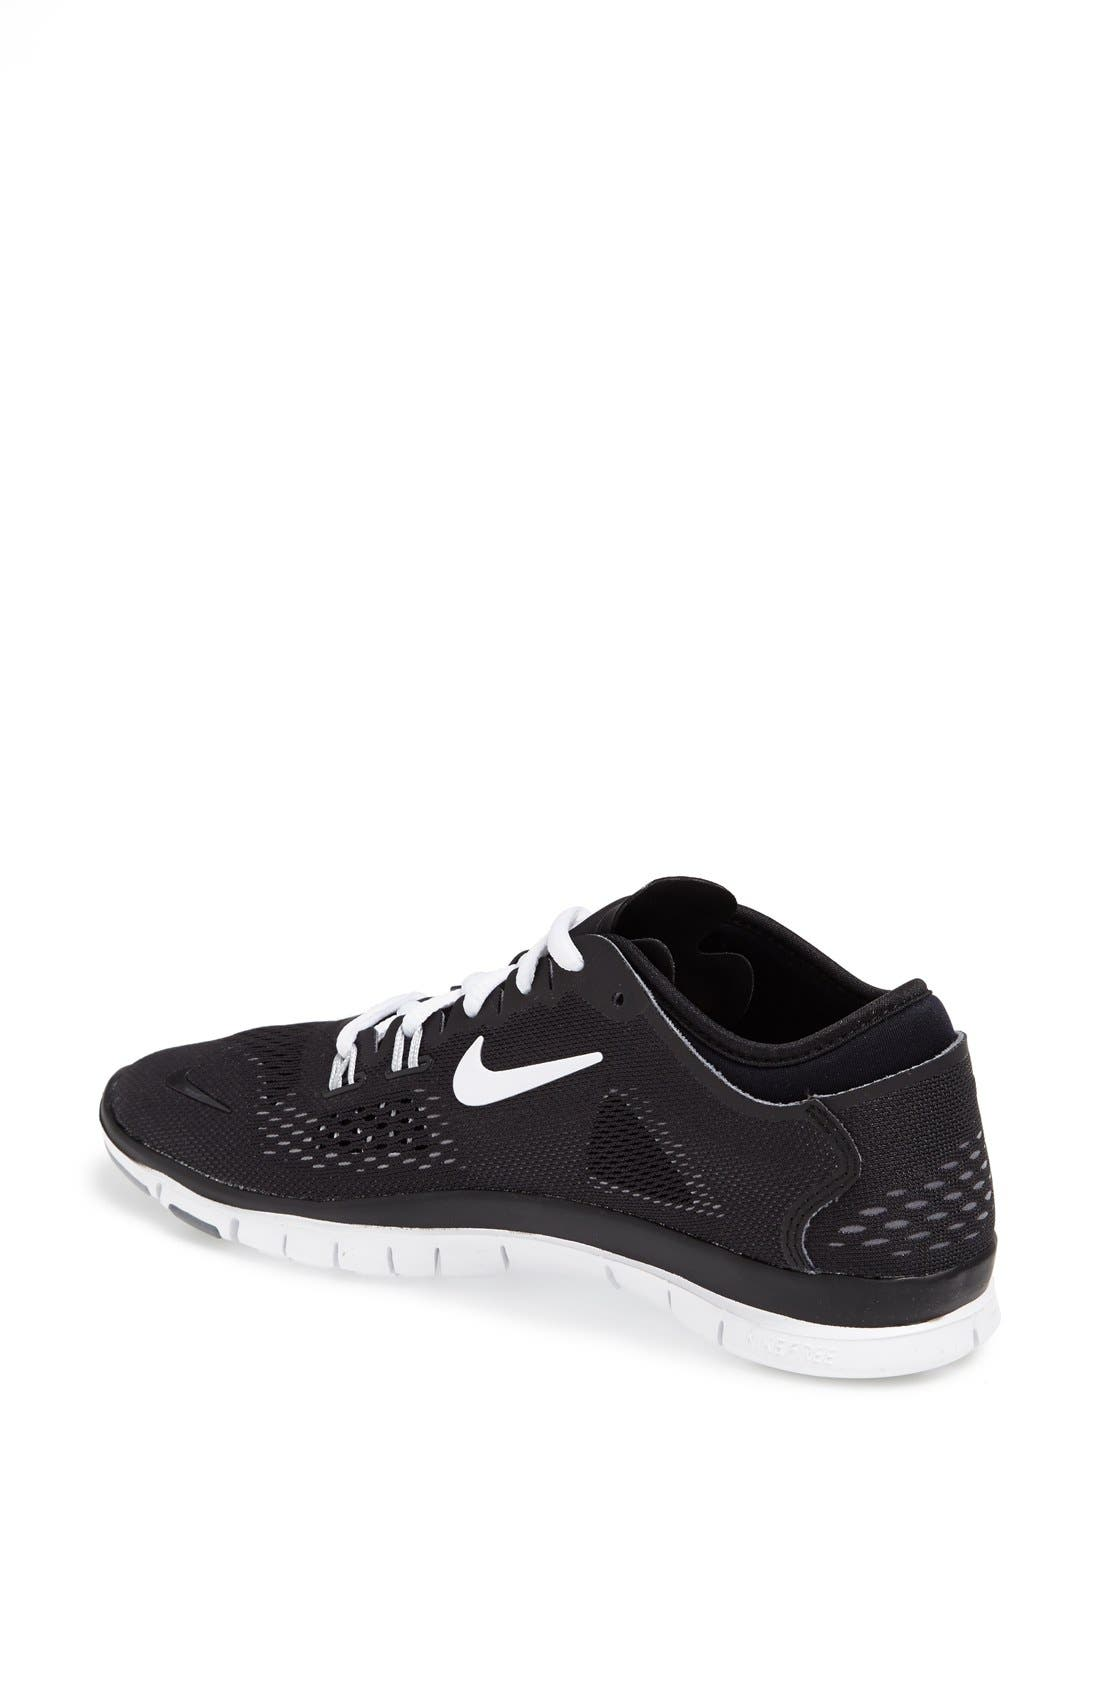 NIKE,                             'Free 5.0 TR Fit 4' Training Shoe,                             Alternate thumbnail 3, color,                             001